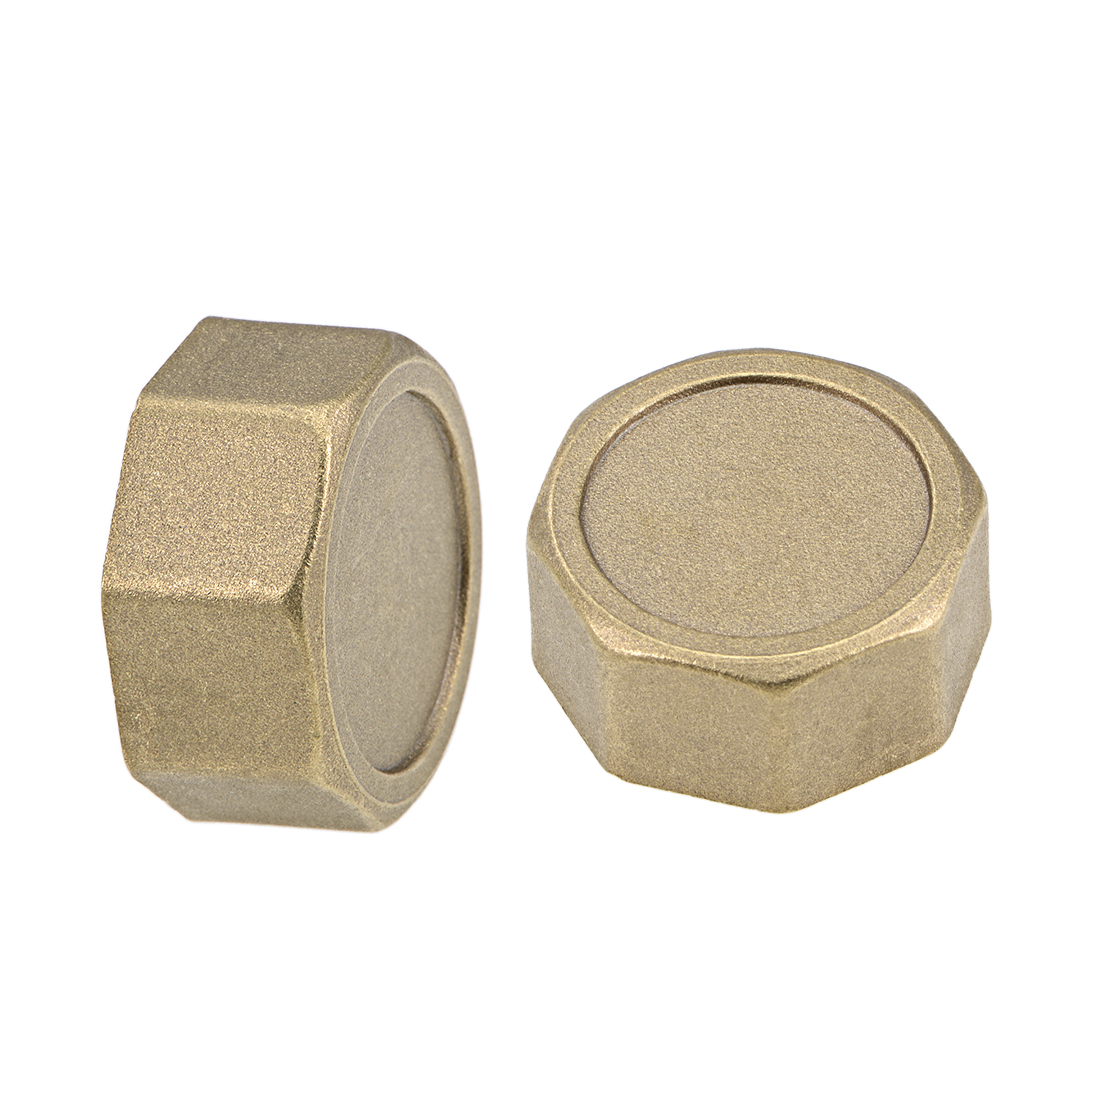 1-Inch Brass Cap 2pcs G1 Female Pipe Fitting Hex Stop Valve Connector